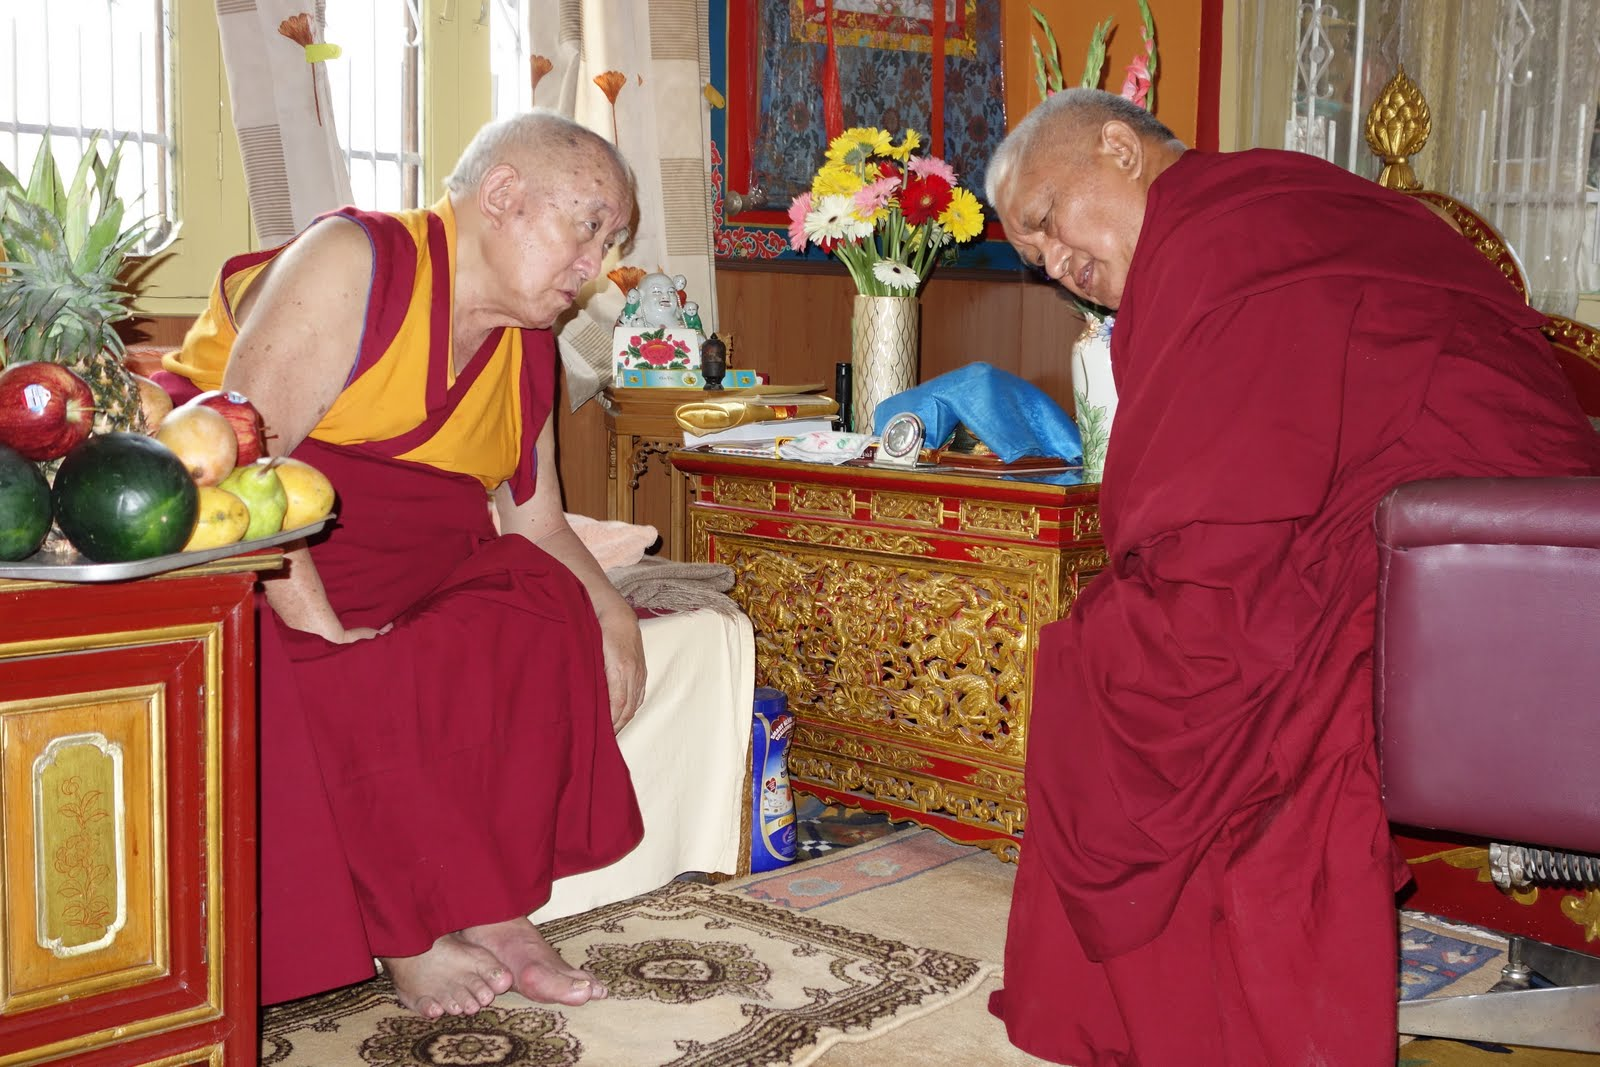 Rinpoche meeting with Dema Locho Rinpoche ( 87 yrs old now ) in McLoed Ganj. it was a very warm and relaxed meeting. Lama Zopa Rinpoche brought a large amount of fruit to offer. Dema Locho Rinpoche greeted with such grace and warmth. Photo: Ven. Roger Kunsang.